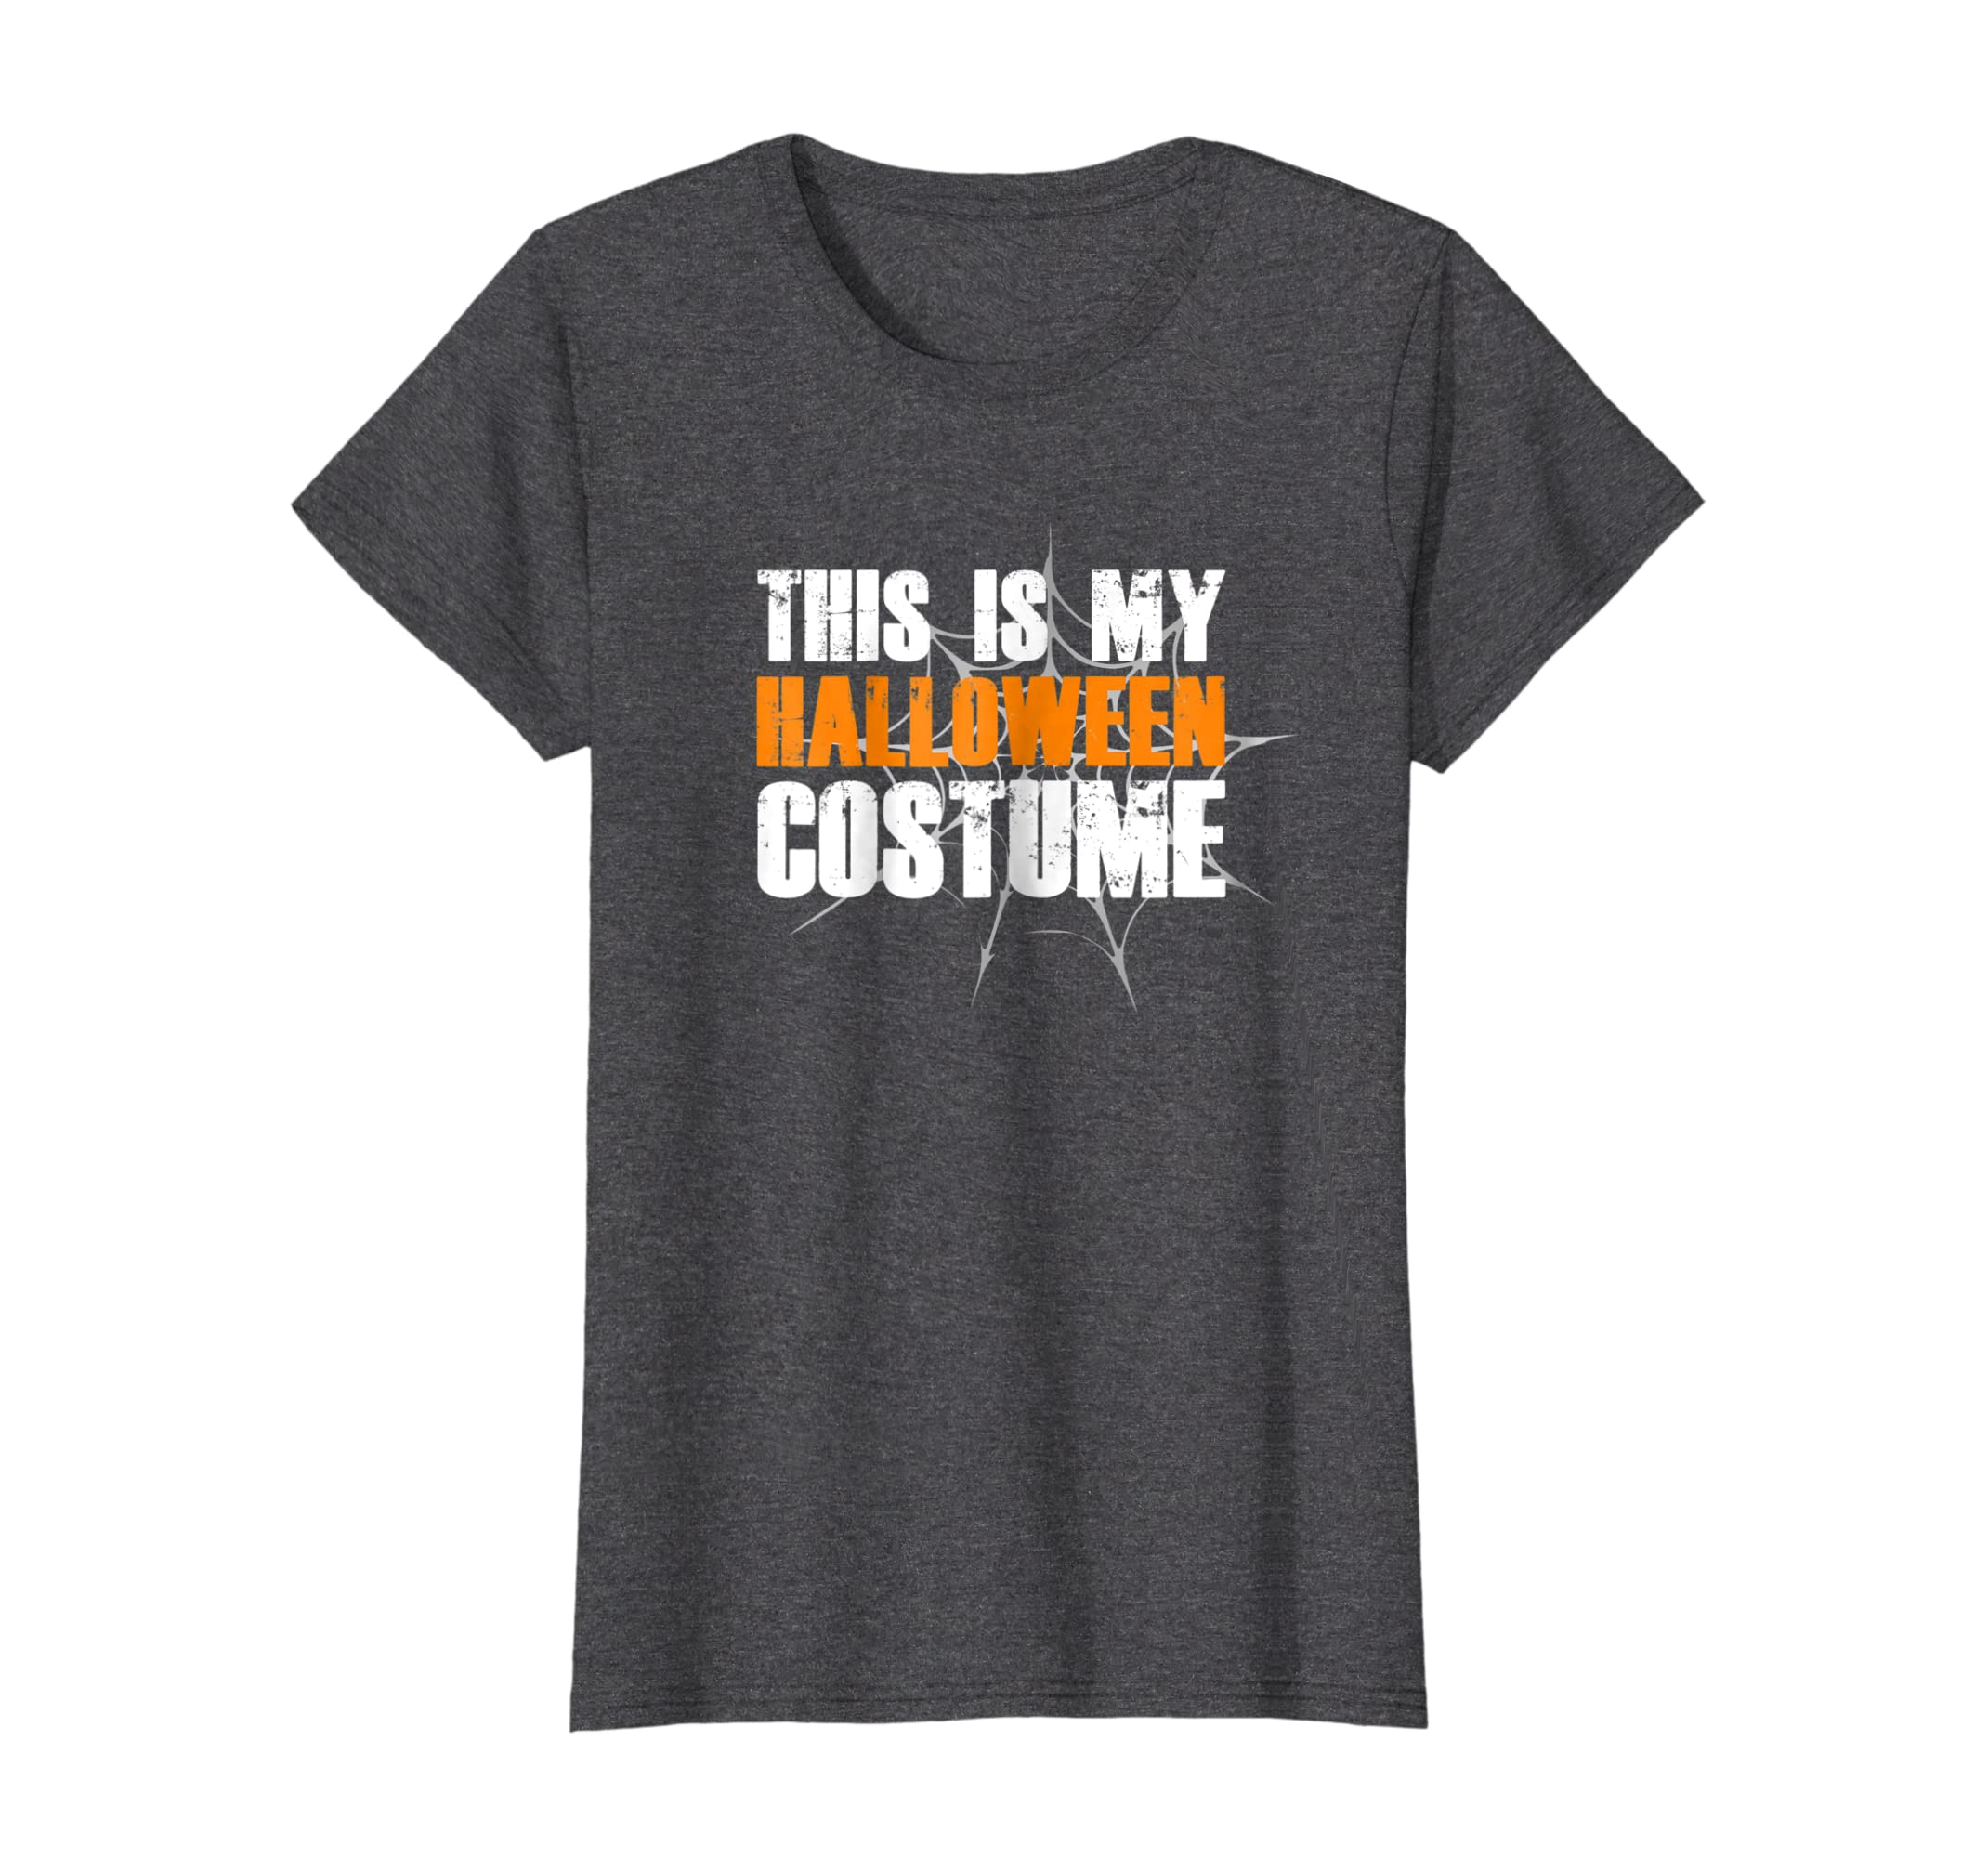 HALLOWEEN COSTUME T Shirt Men Women Funny Vintage Tee Gift